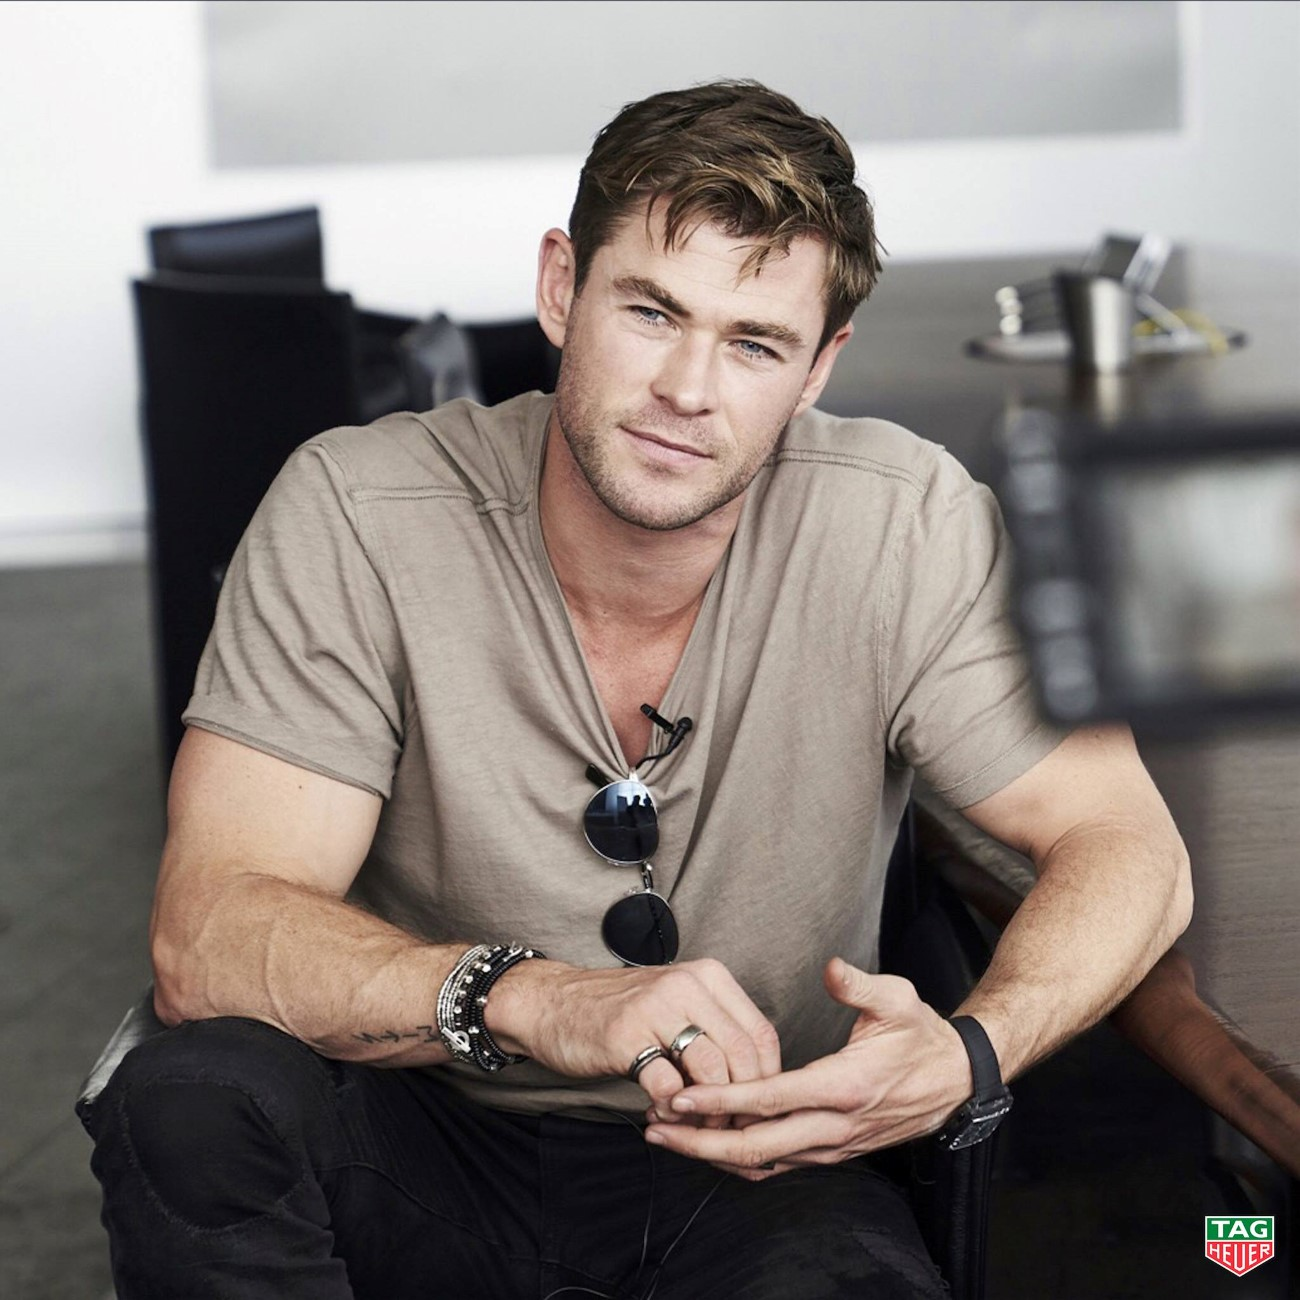 TAG Heuer Home Session Episode 3 - Chris Hemsworth